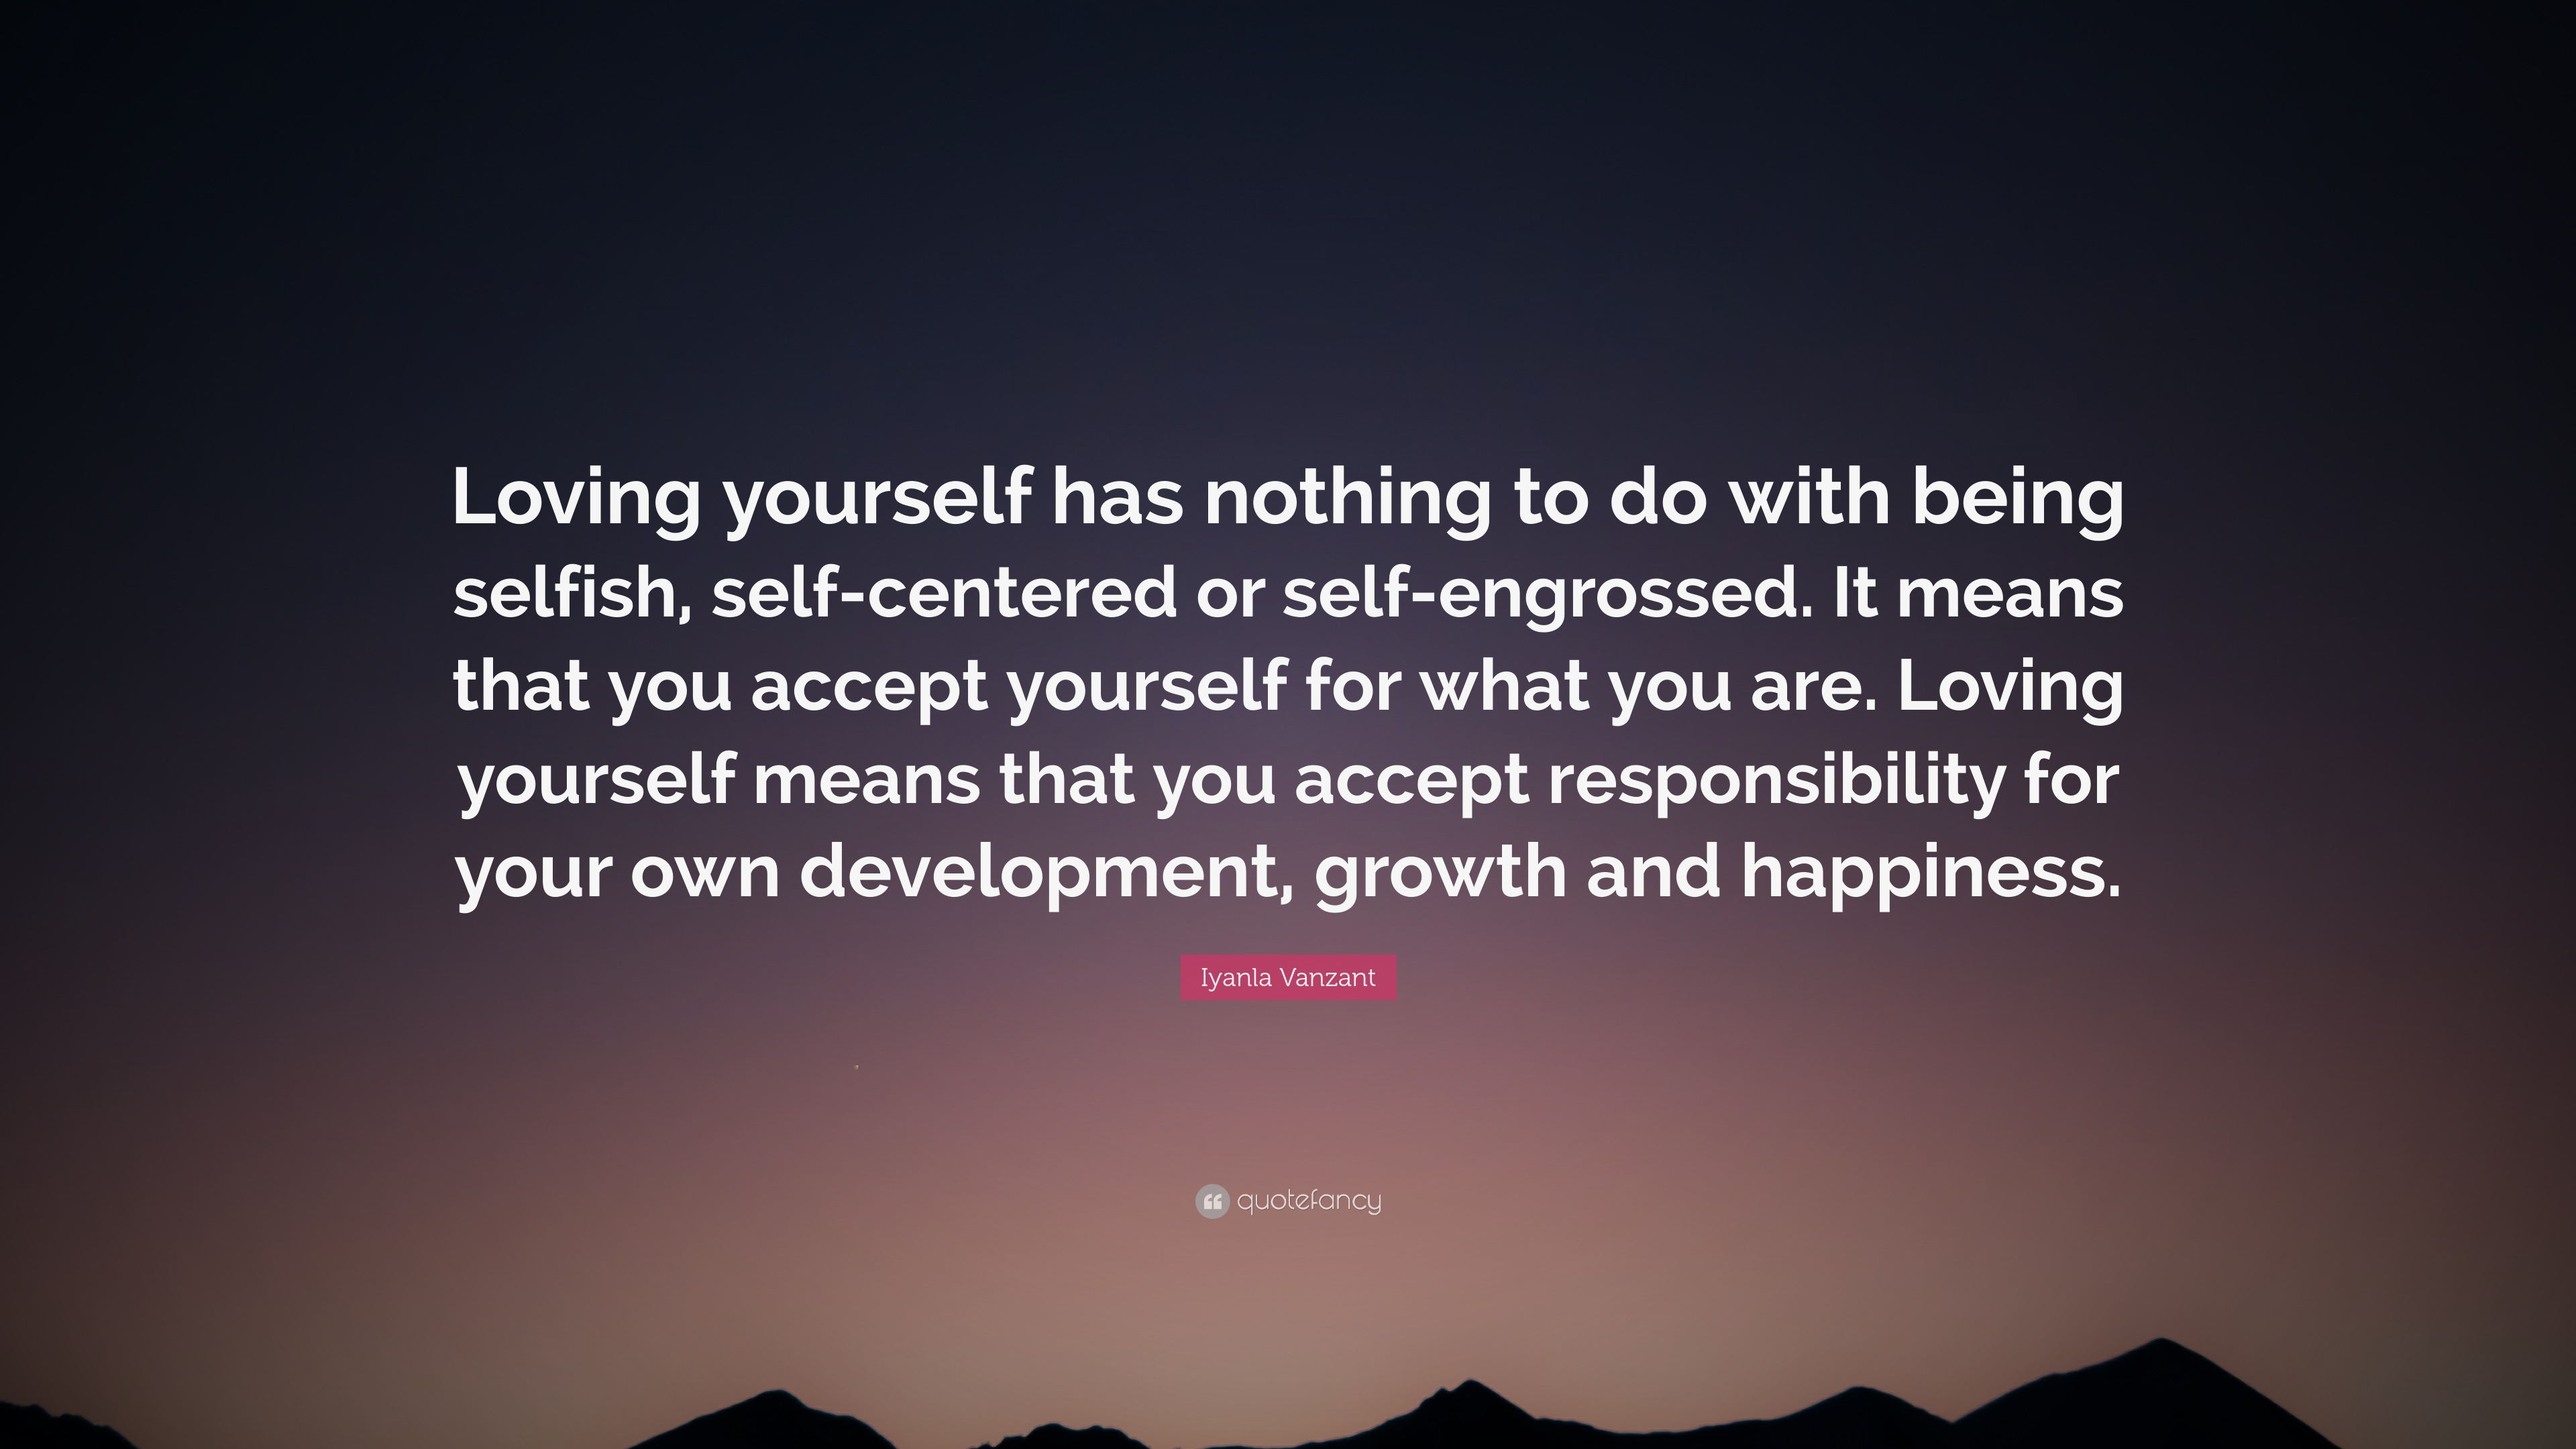 Iyanla Vanzant Quote: U201cLoving Yourself Has Nothing To Do With Being  Selfish, Self